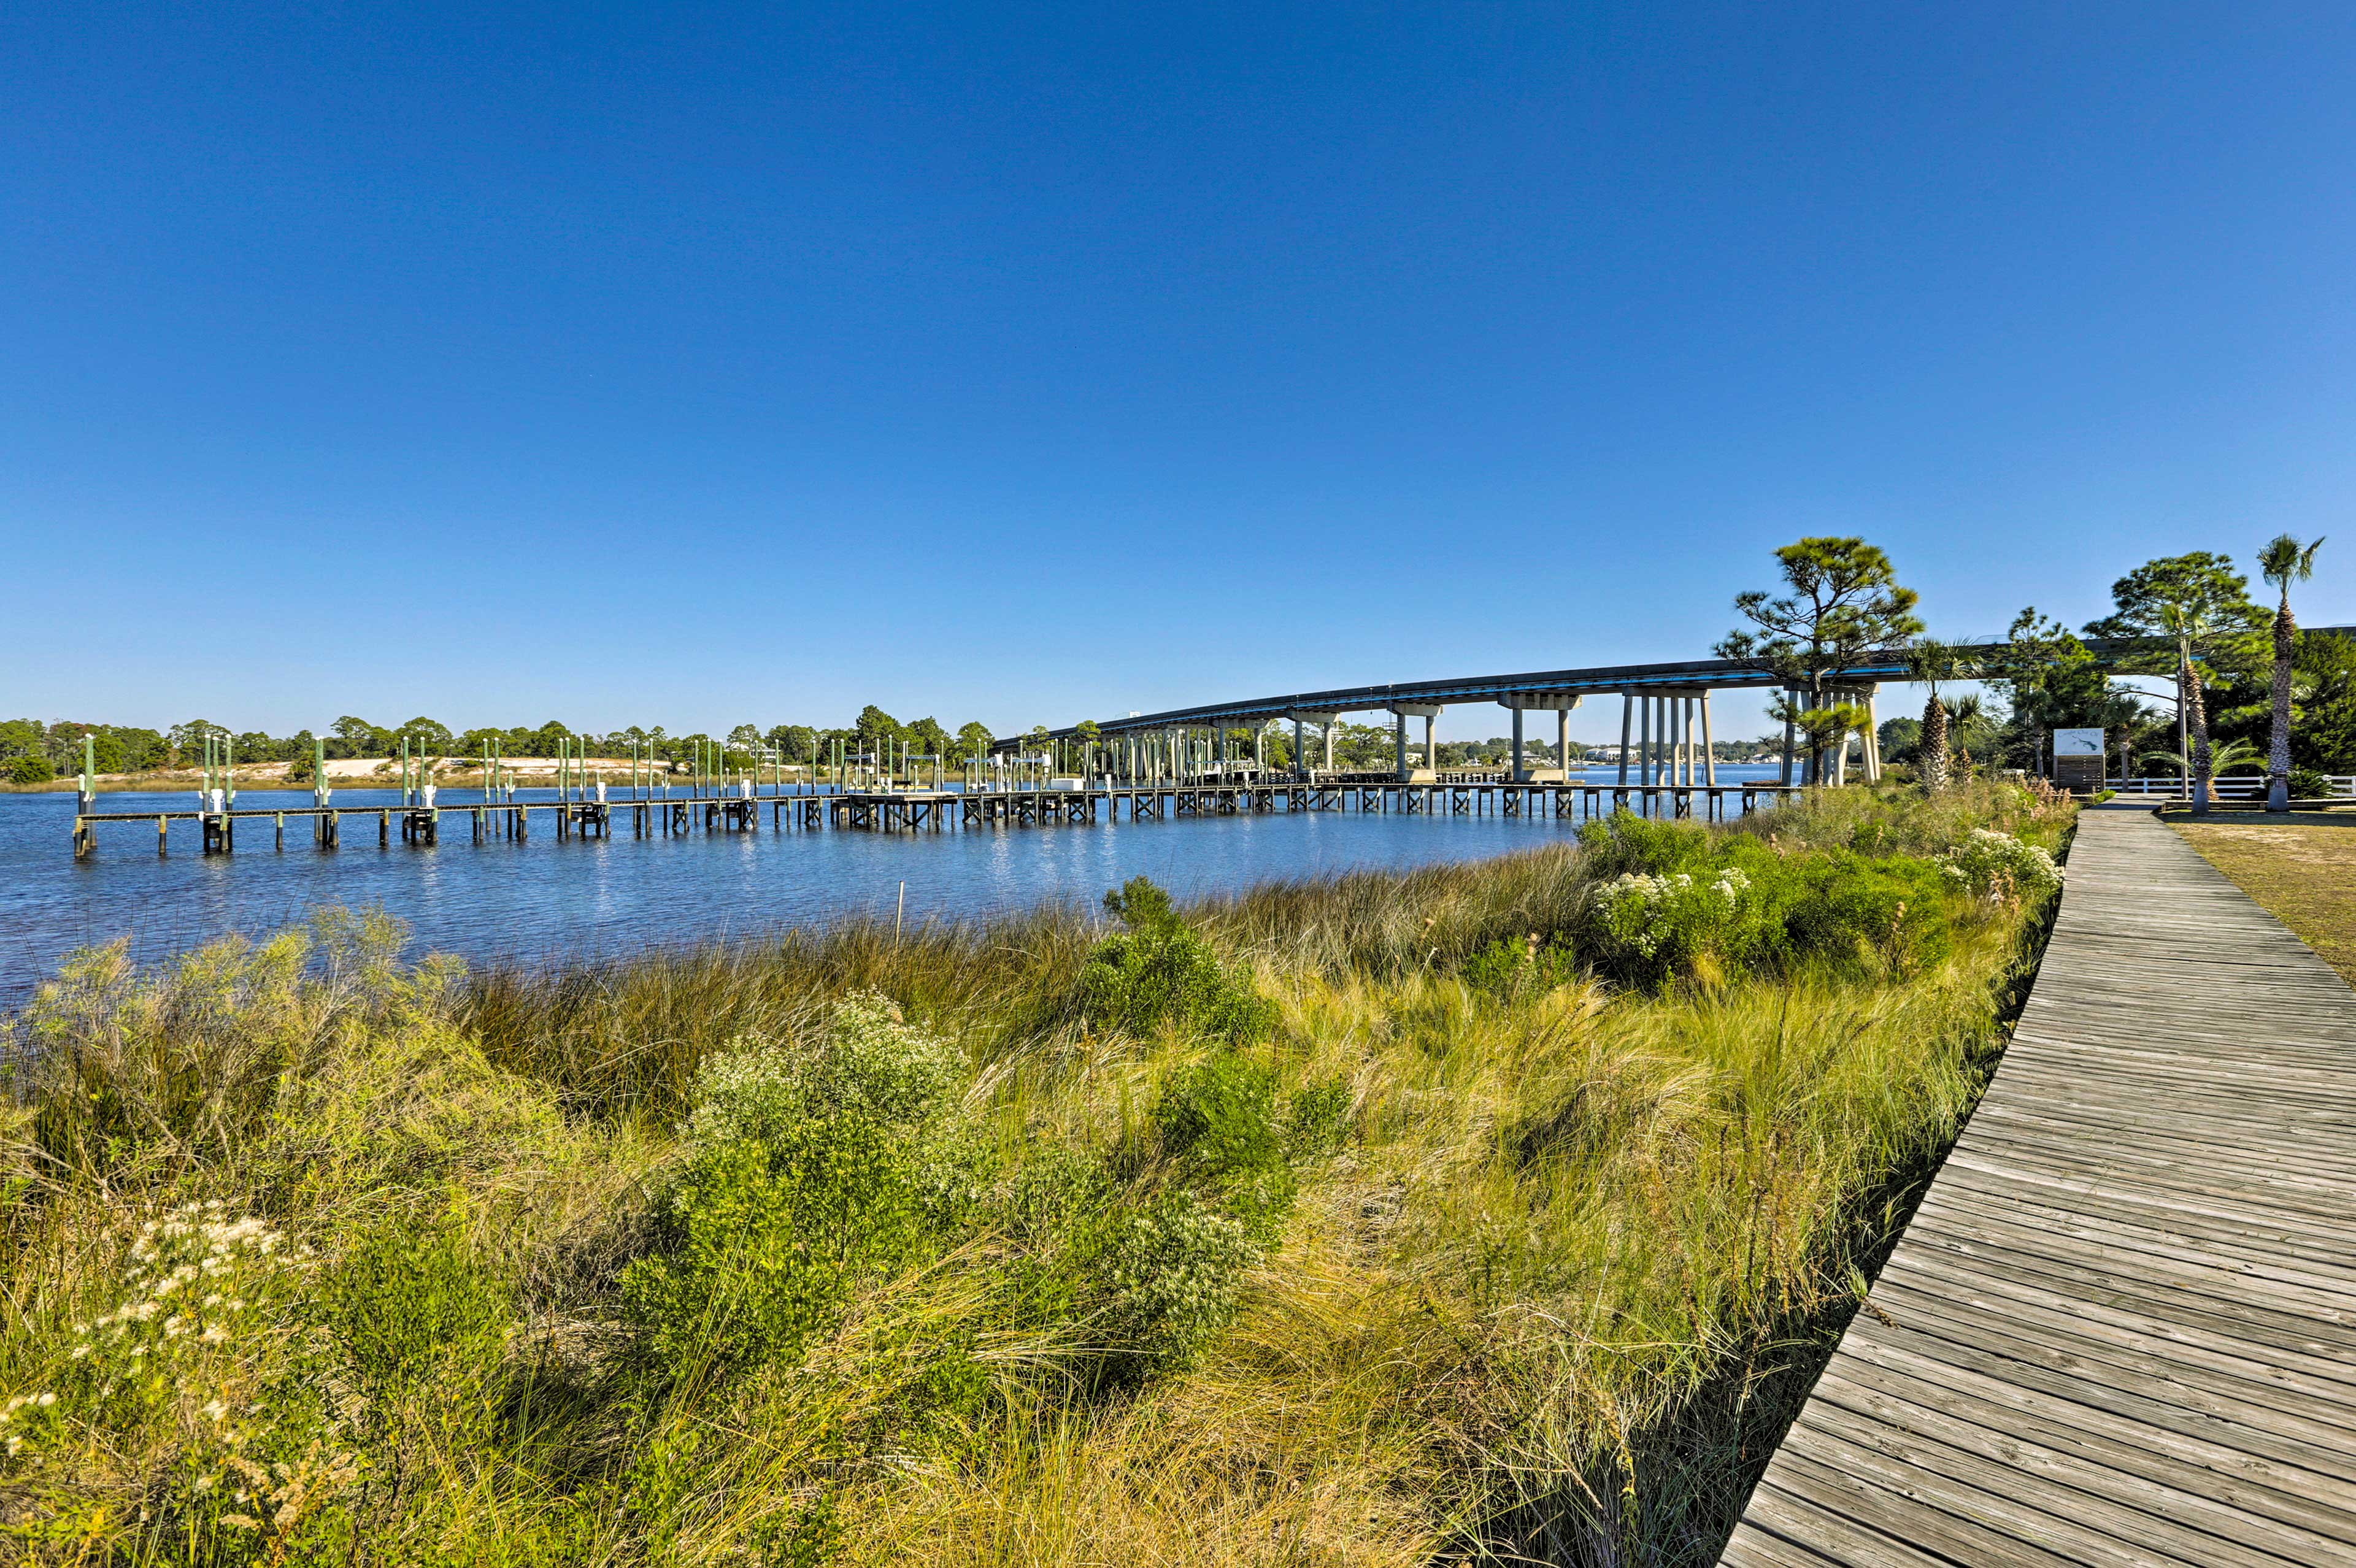 Take advantage of the home's private dock, boat slip and fish cleaning area during your stay!